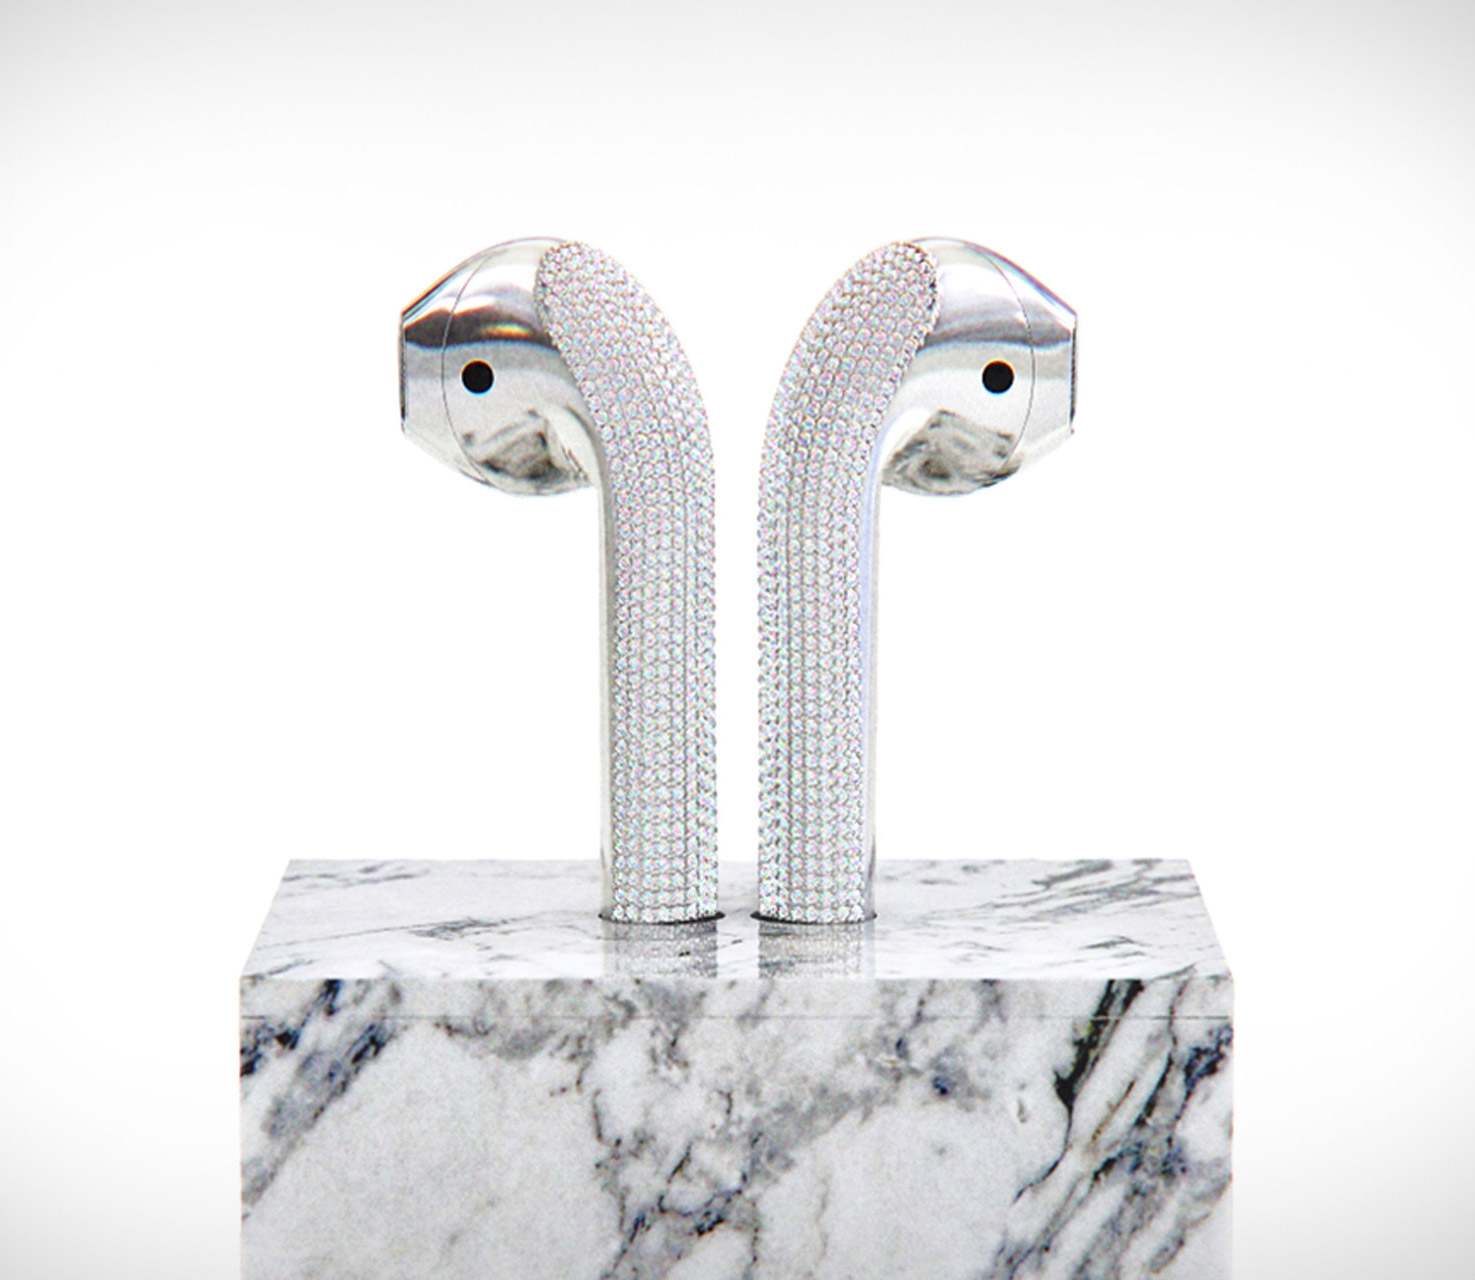 Diamond Apple AirPods